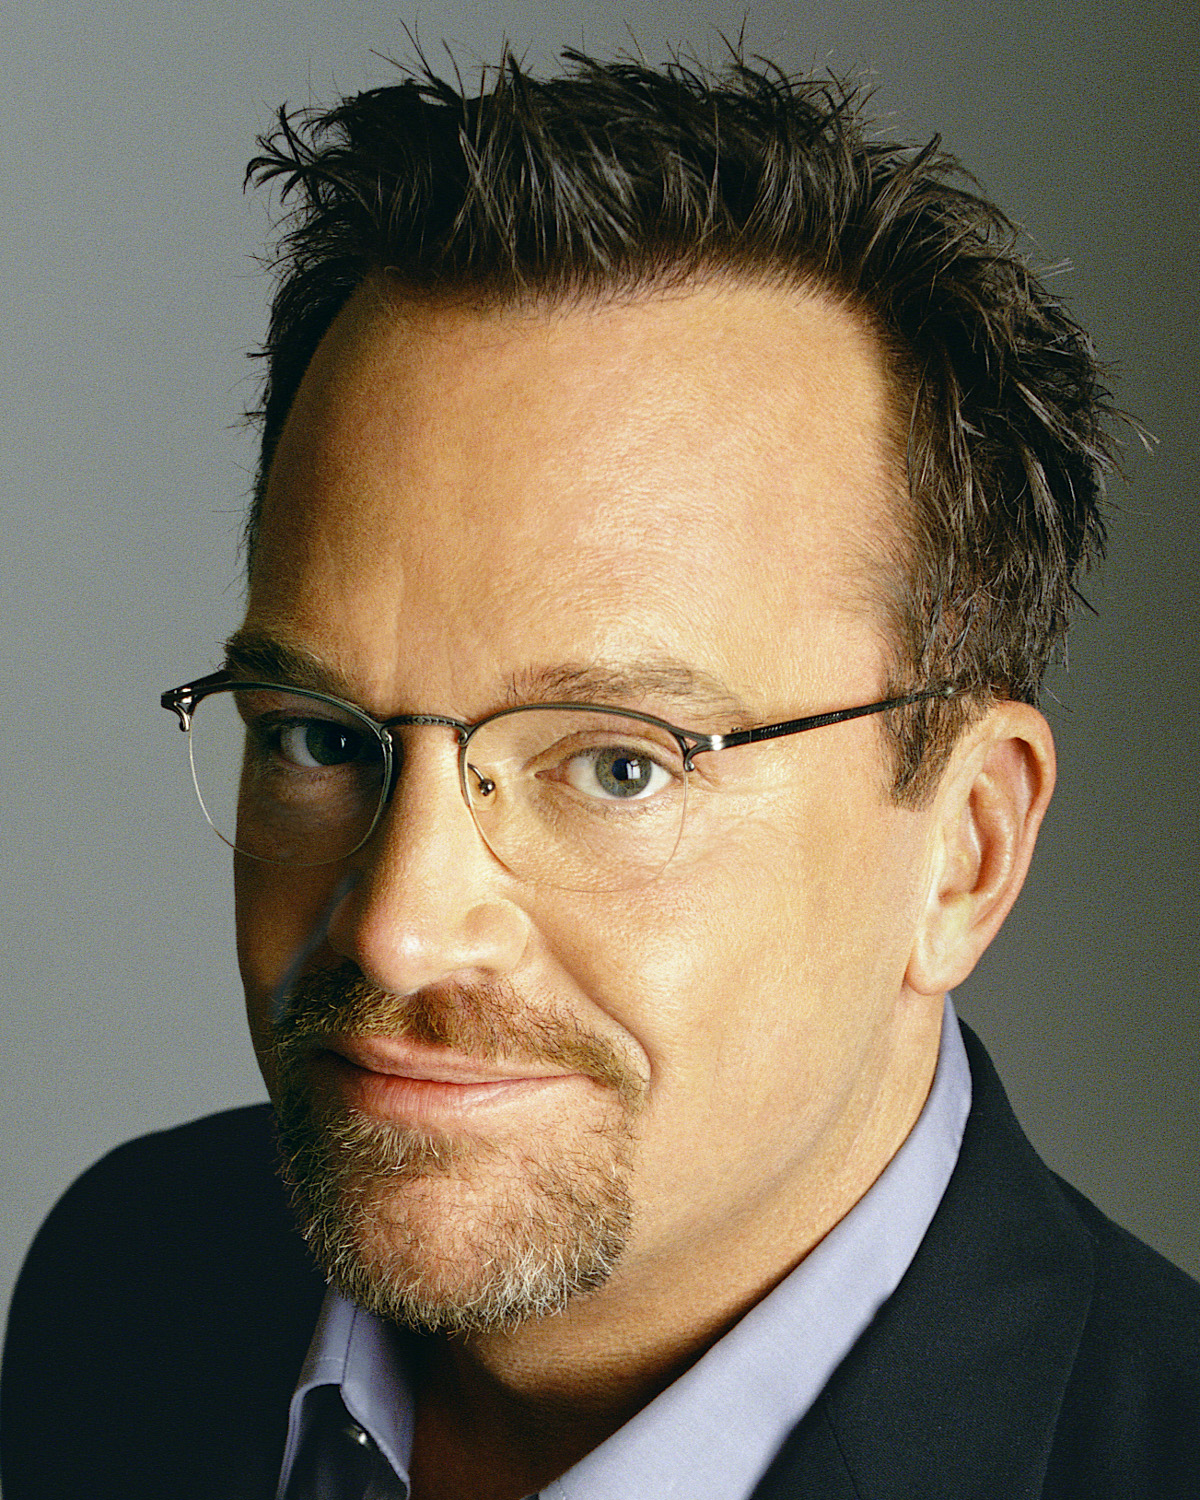 wallpaper sea tom arnold wallpaper hd